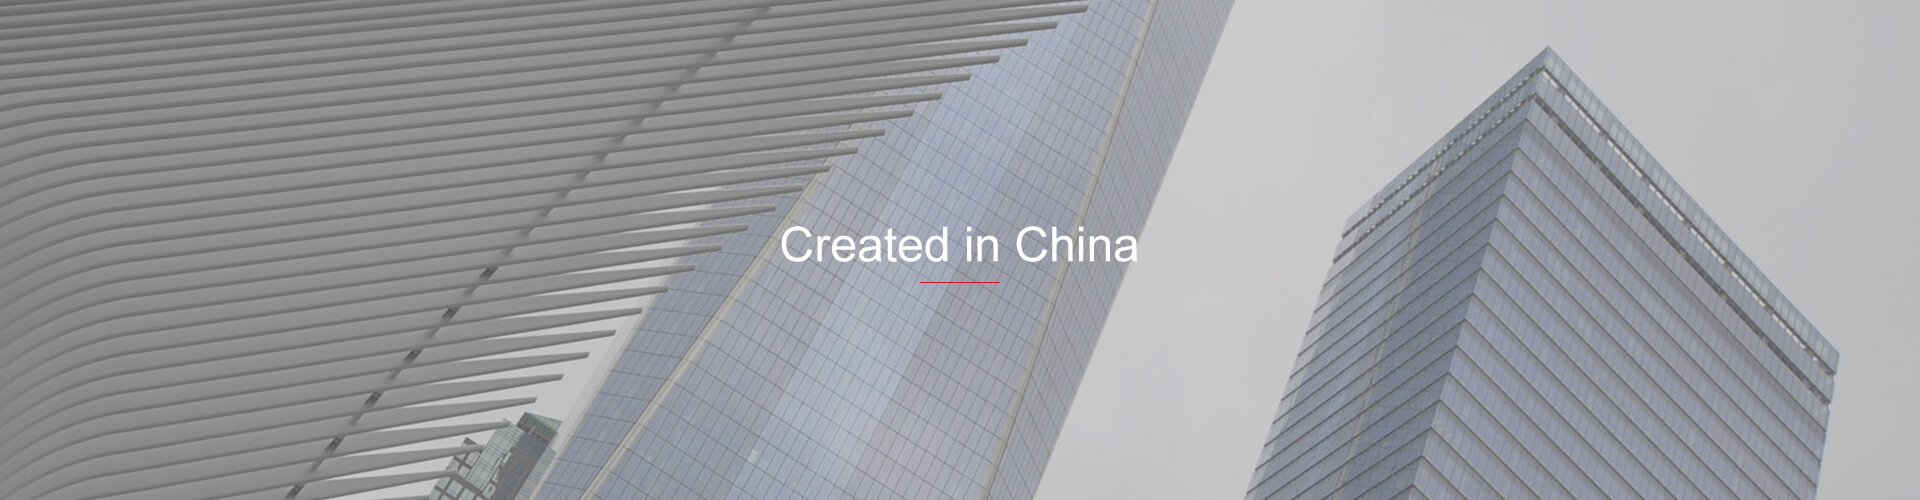 Created-in-China